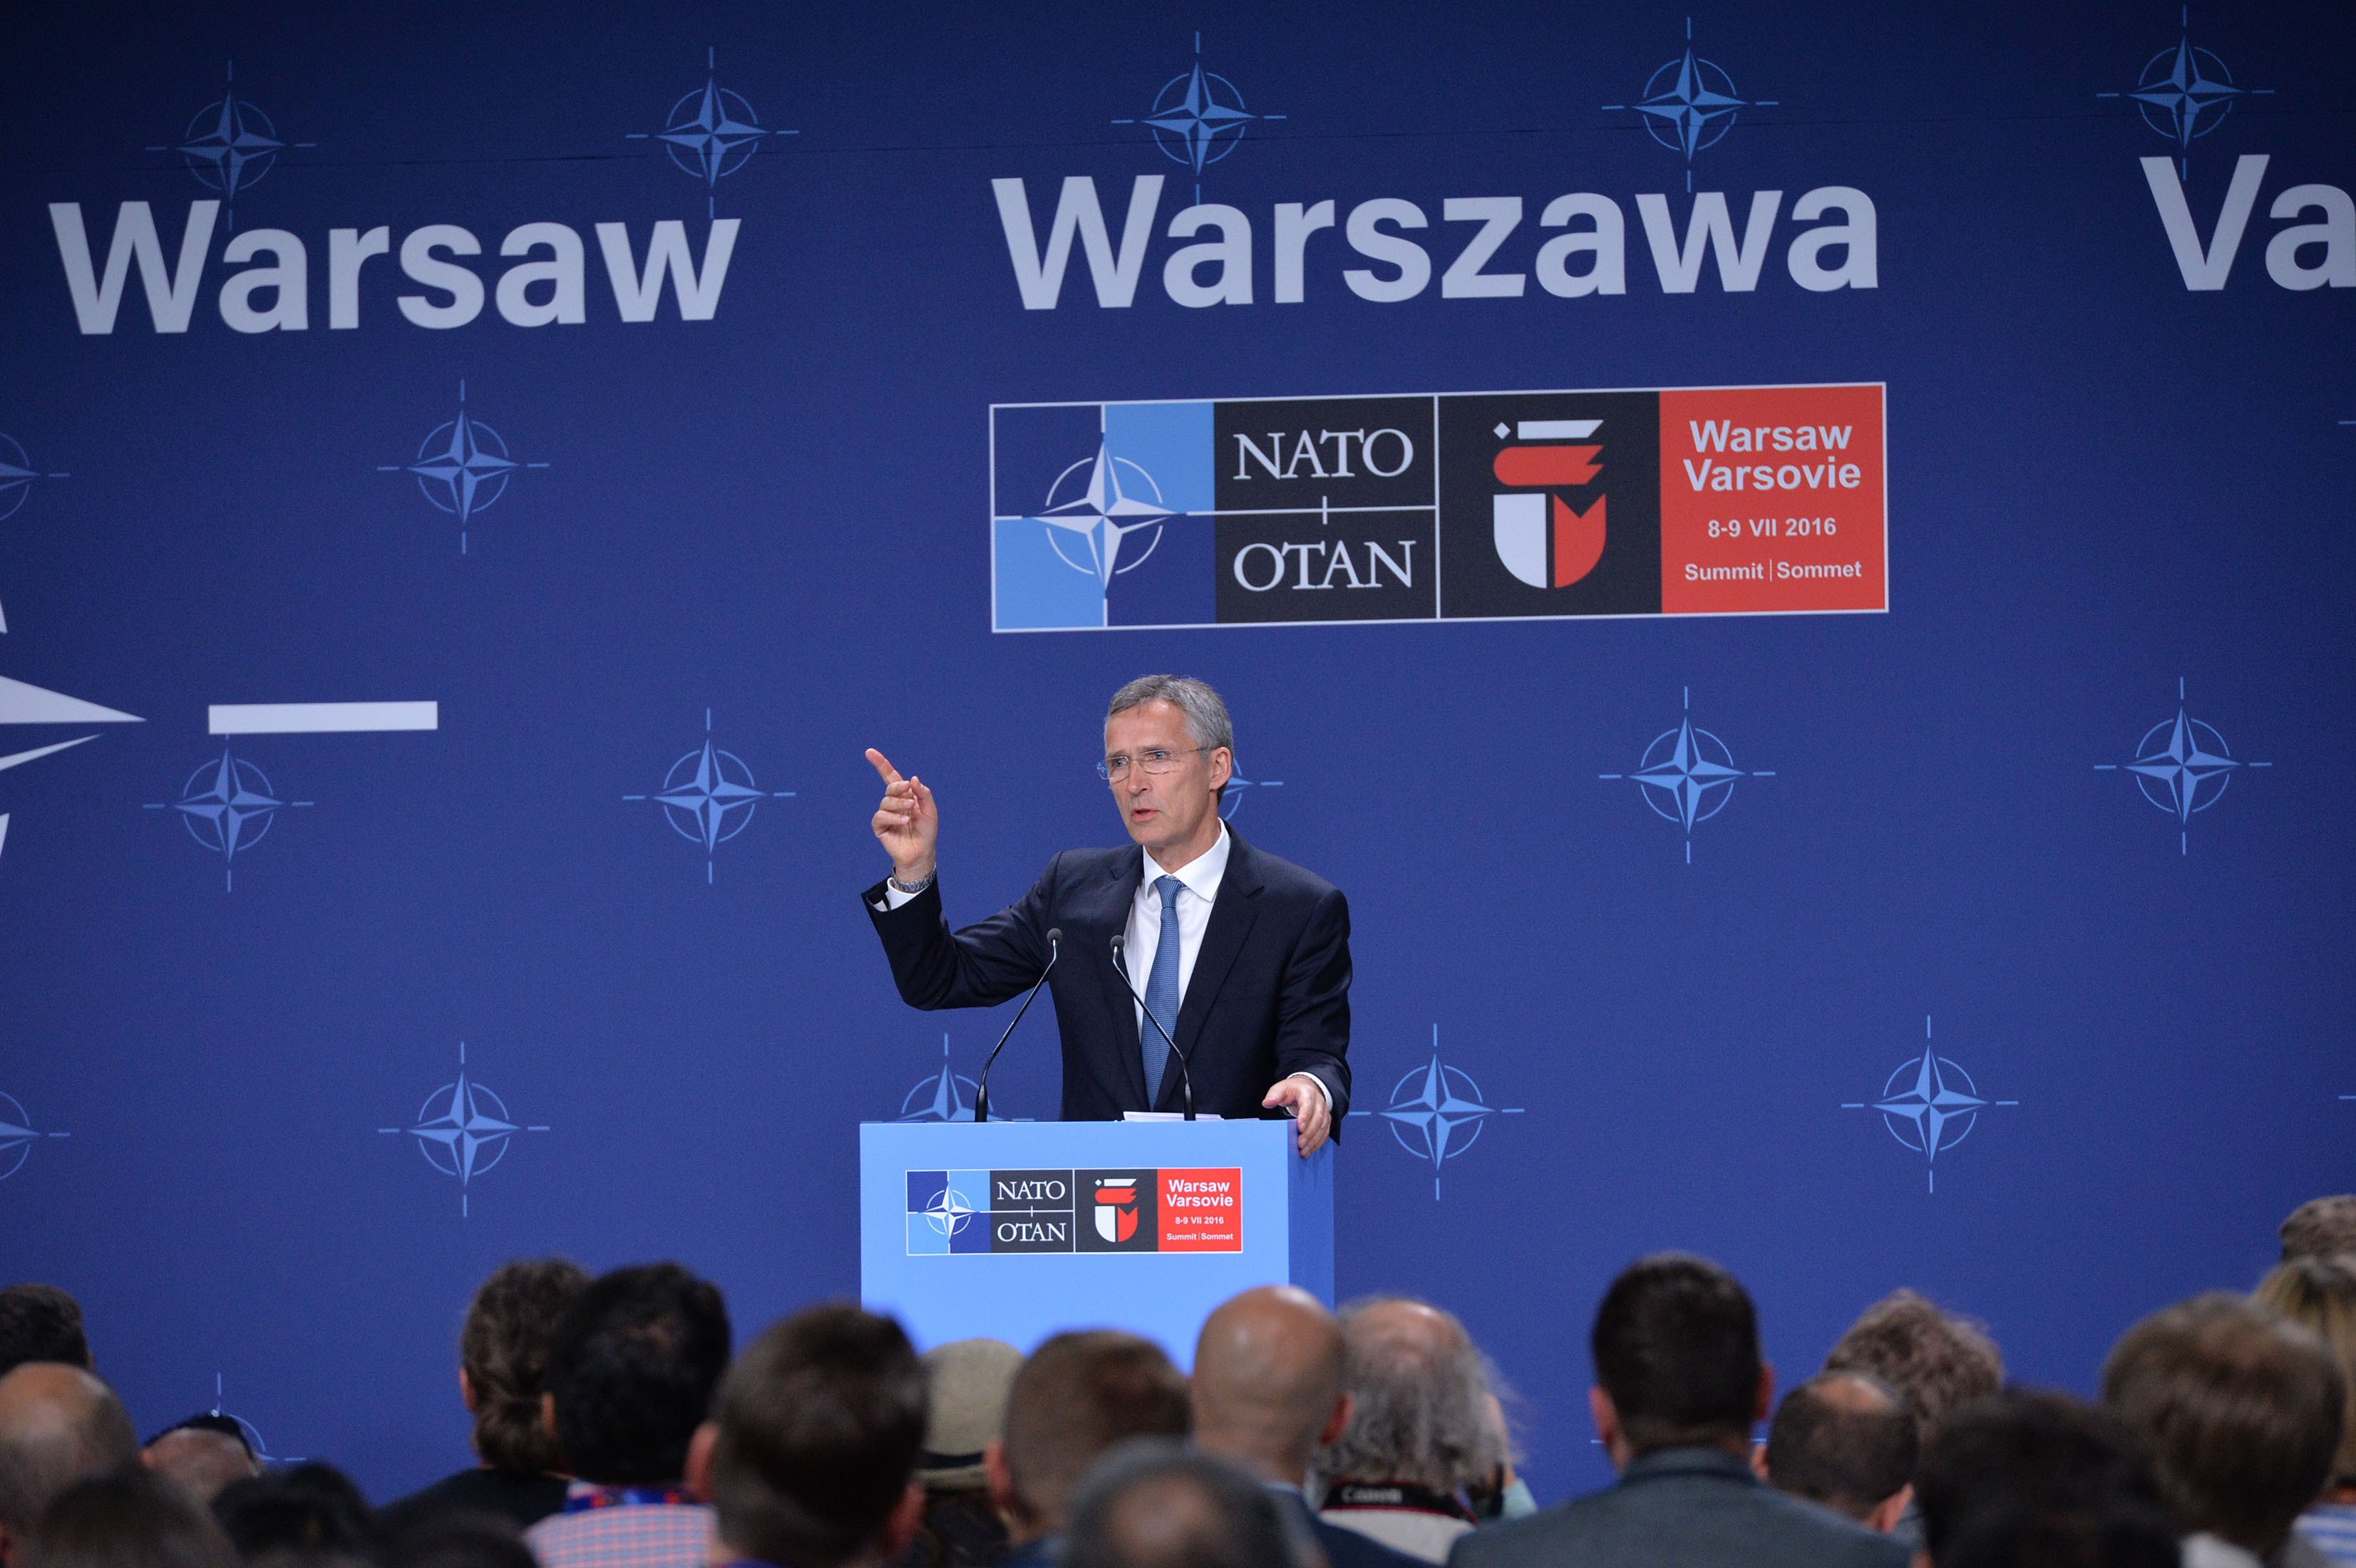 Opinion: The 26th 'NATO Party Conference' in Warsaw